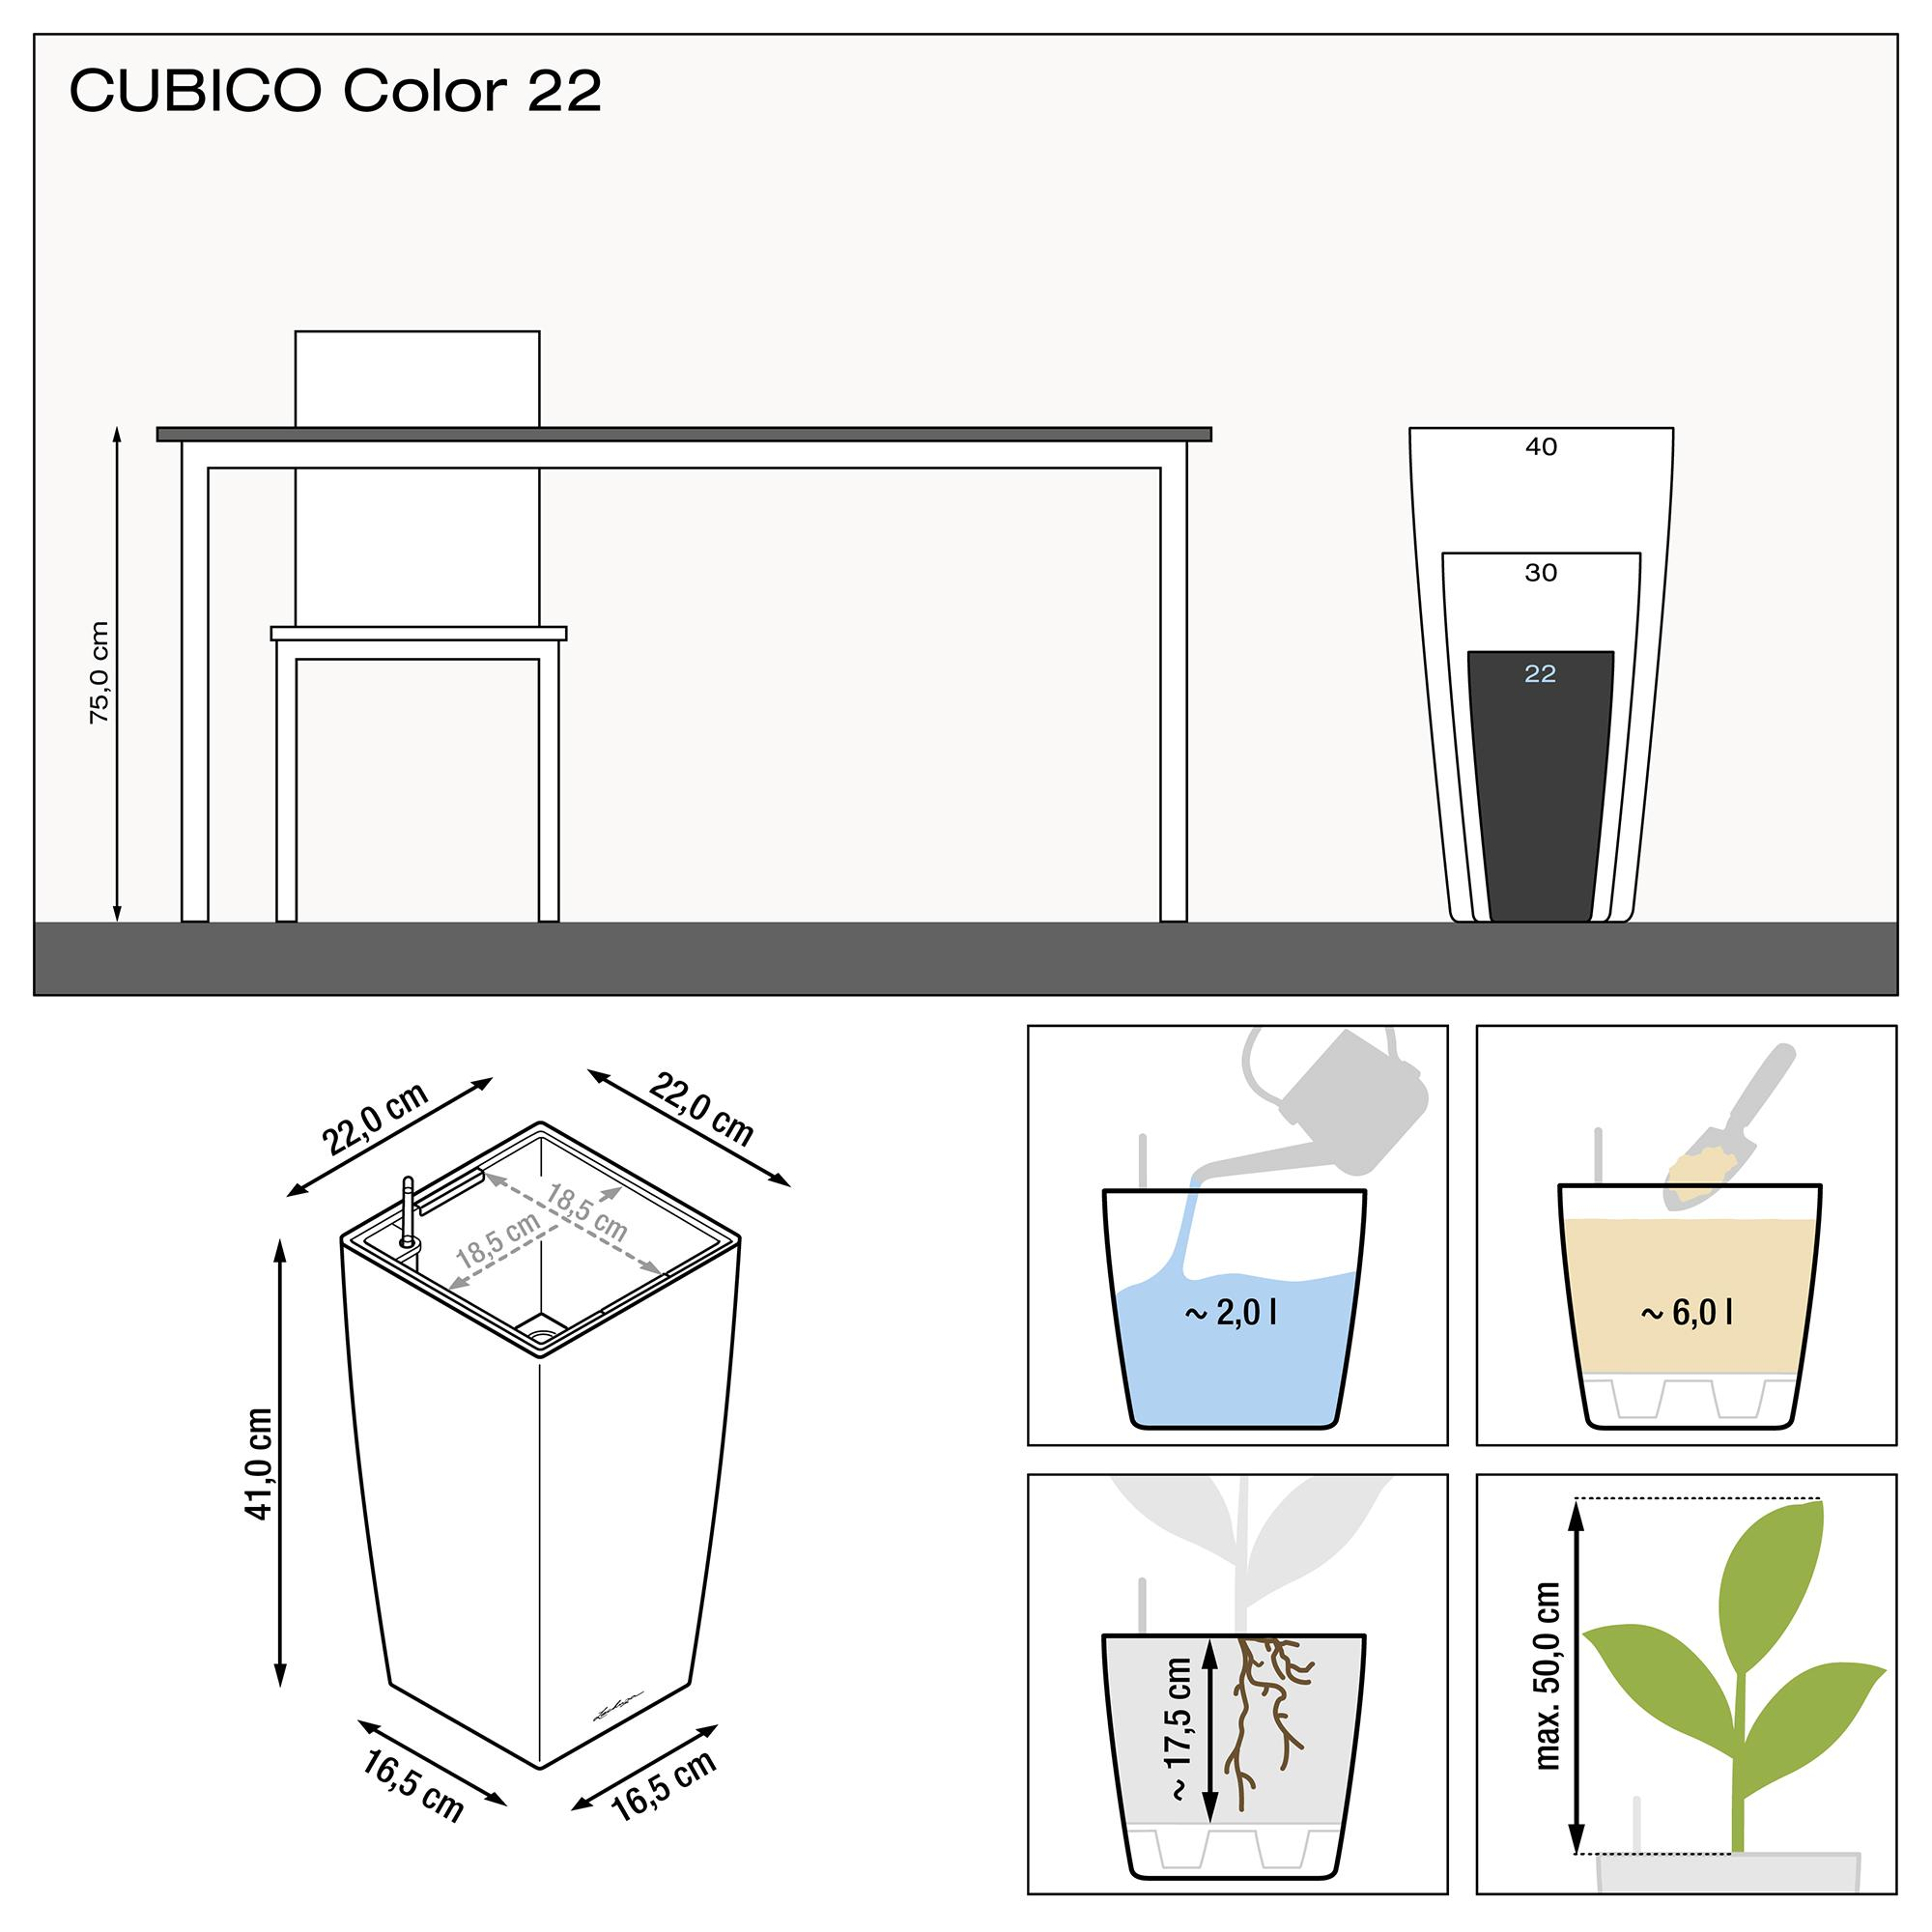 le_cubico-color22_product_addi_nz